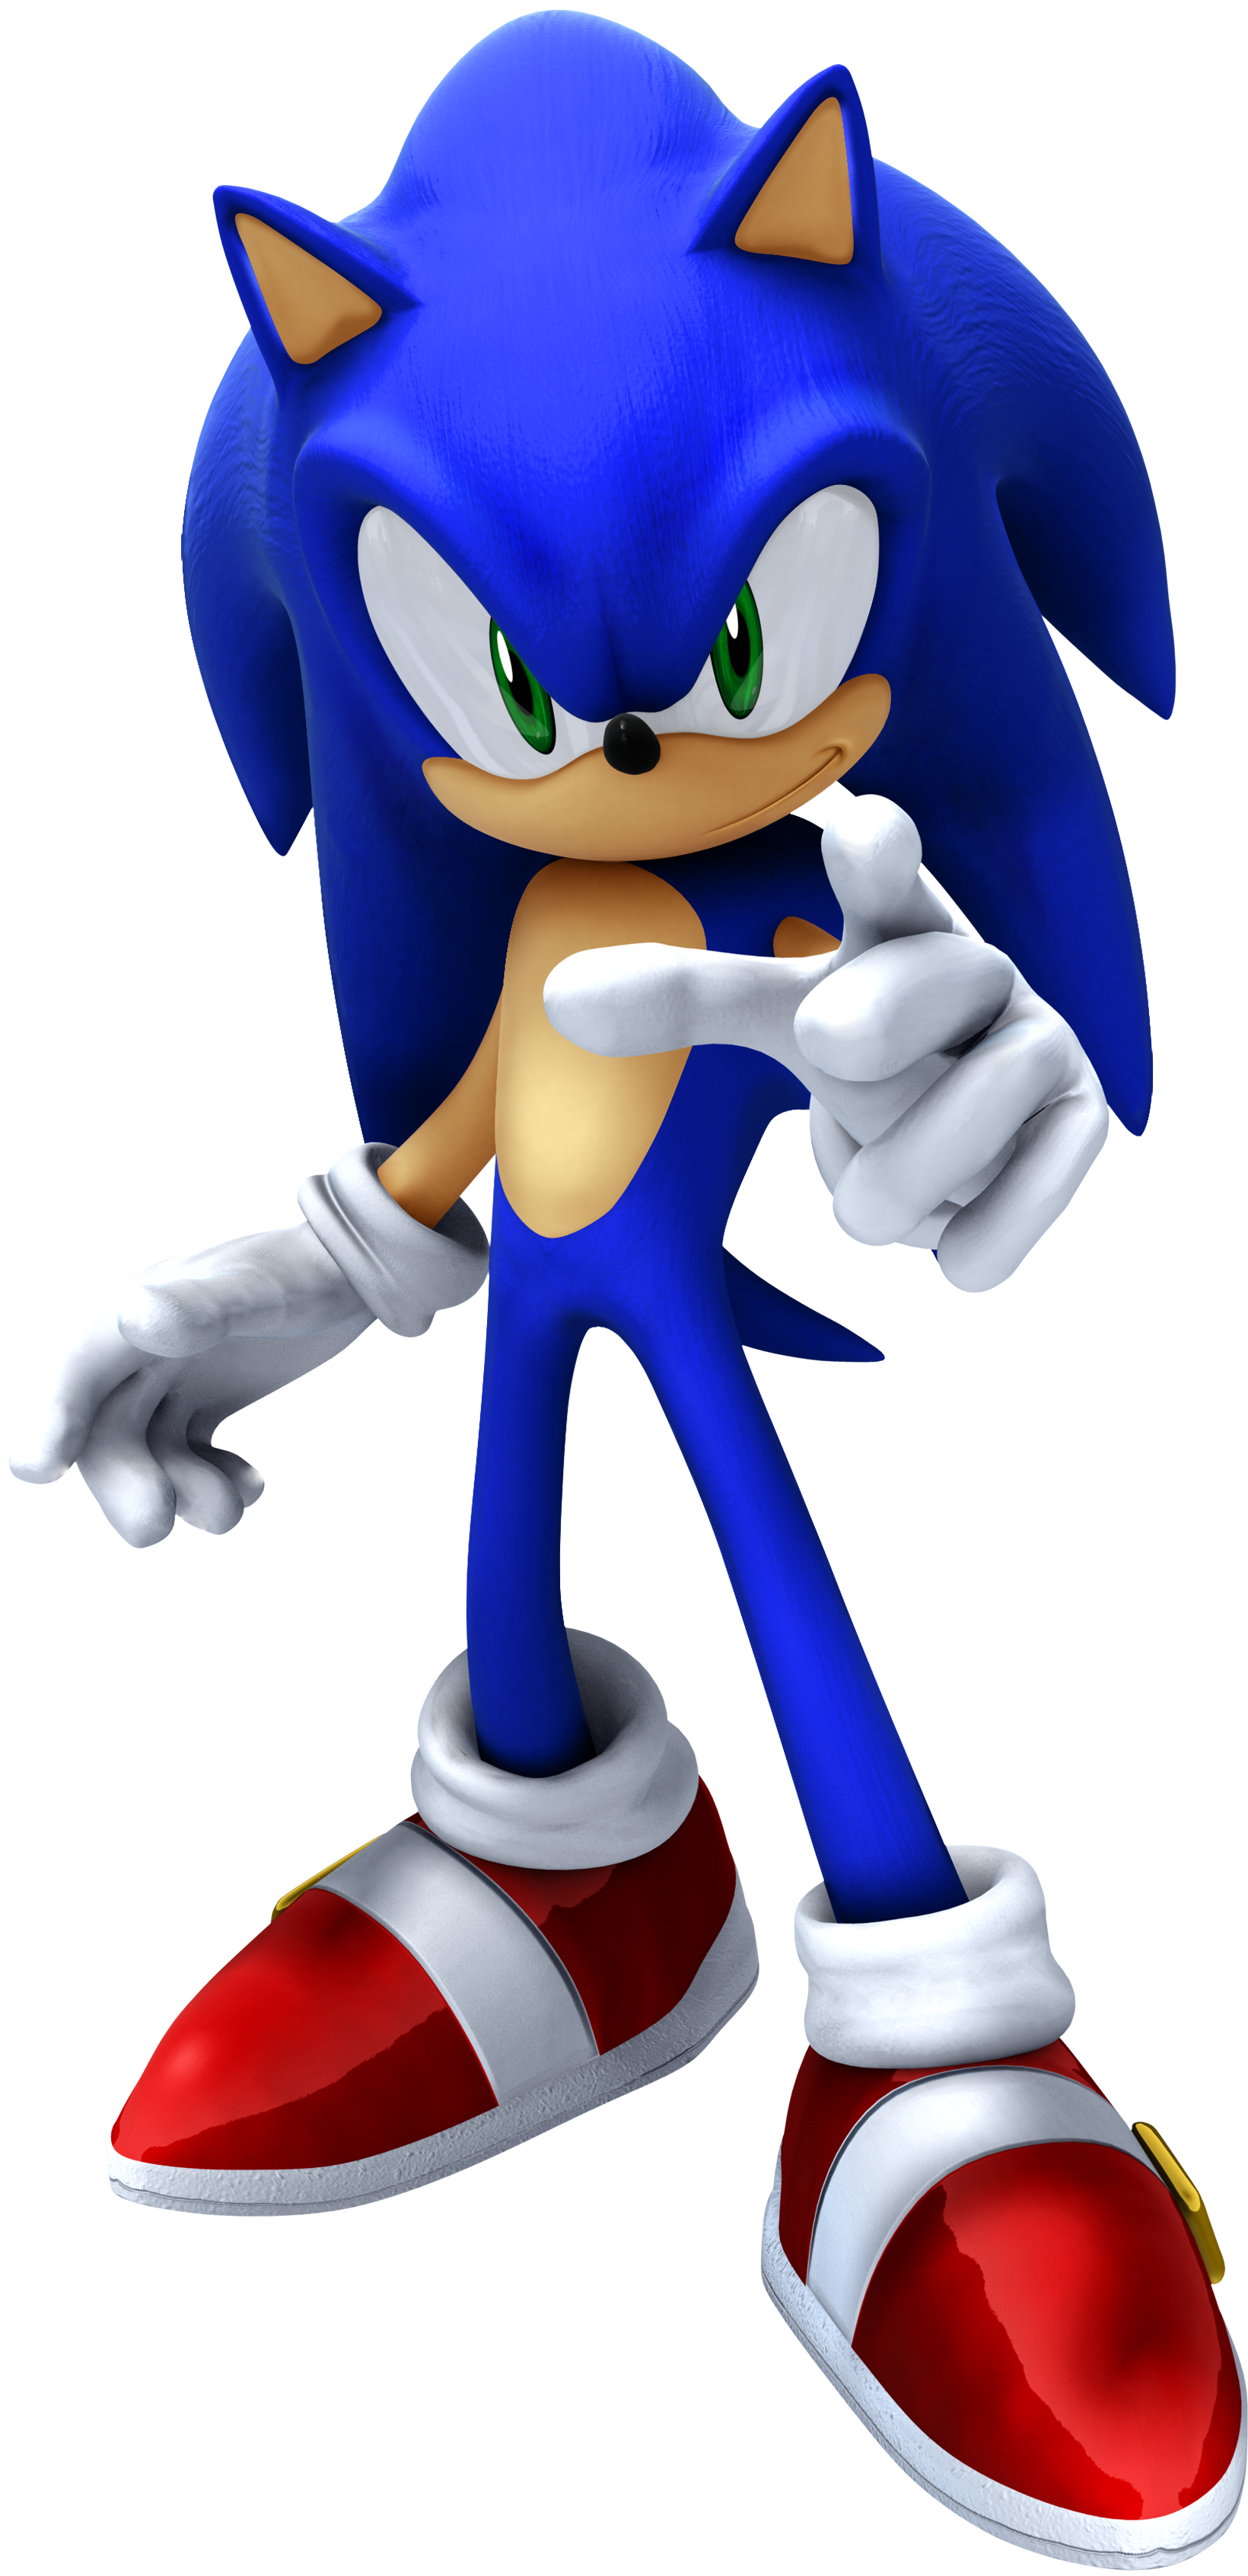 http://img1.wikia.nocookie.net/__cb20090129043631/sonic/images/0/06/Next_sonic_00.png